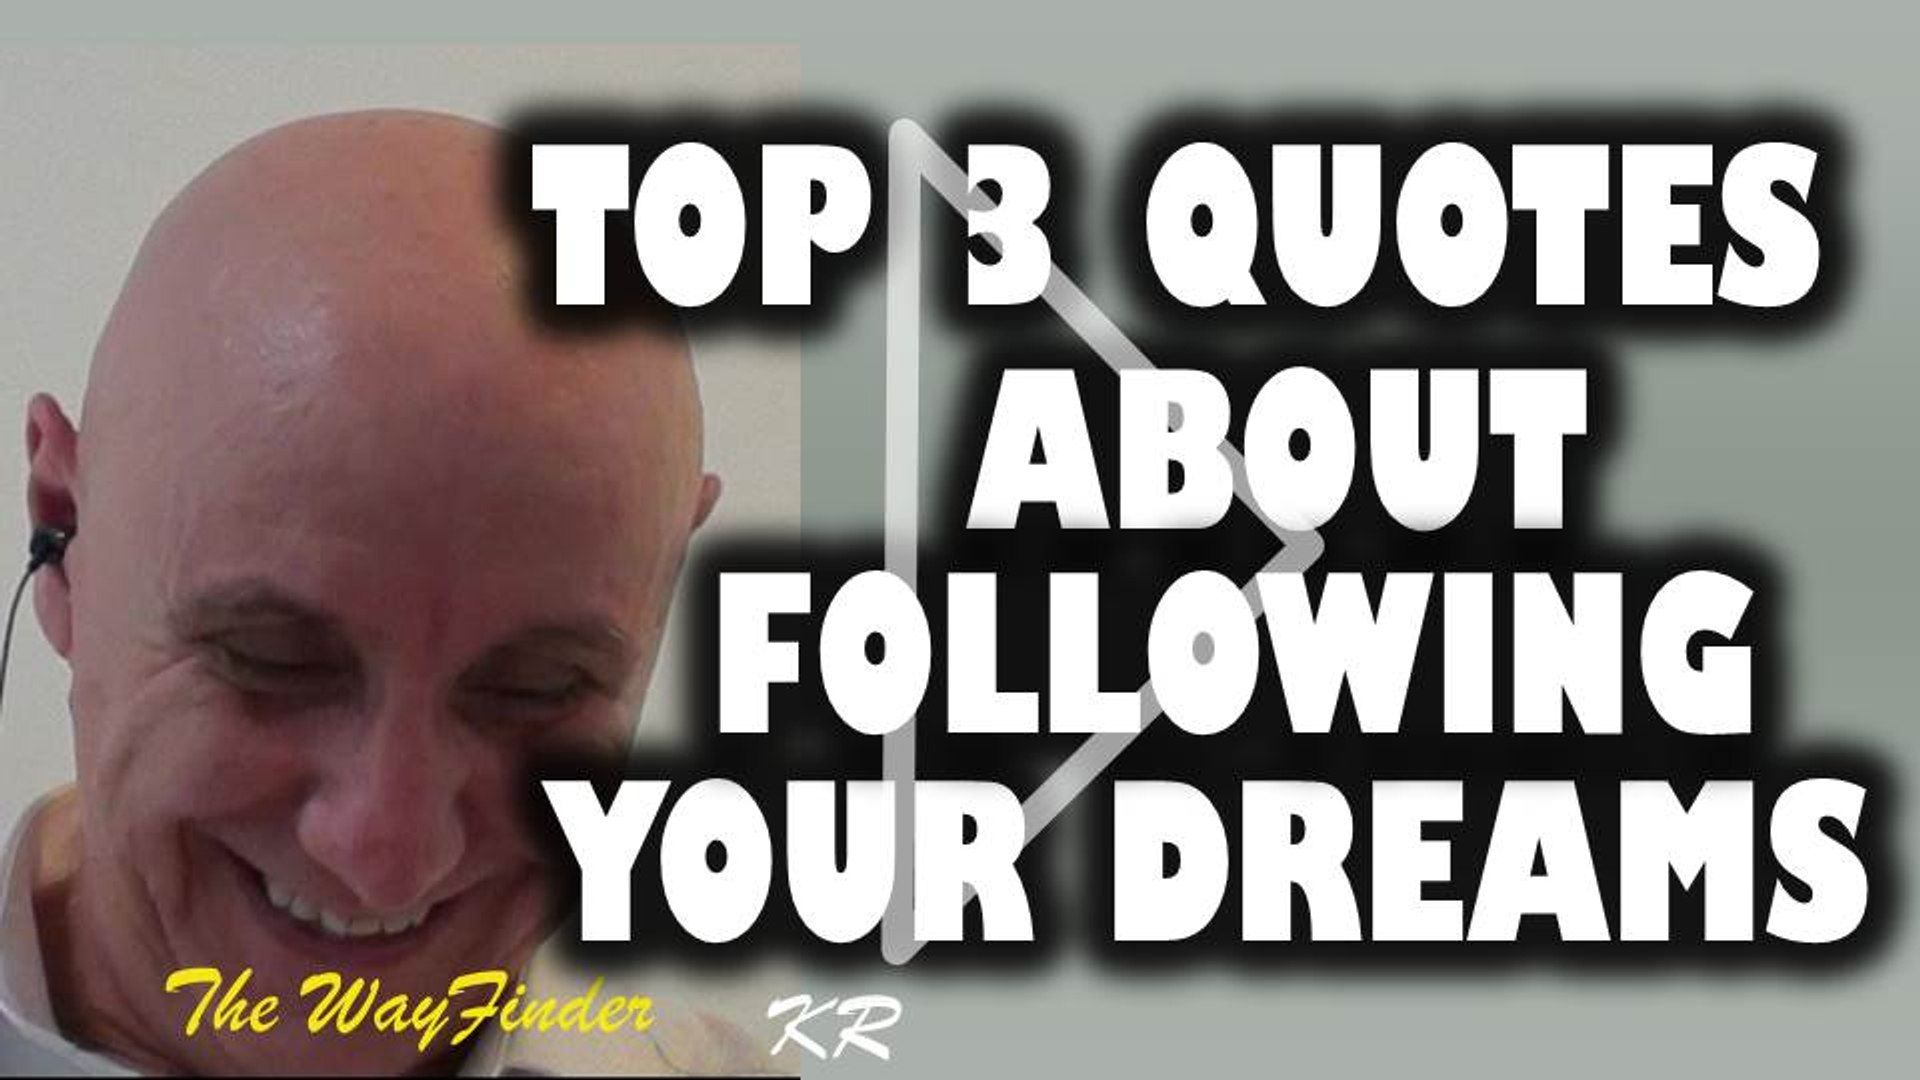 My top 3 quotes about following your dreams, My top 3 quotes about pursuing your dreams